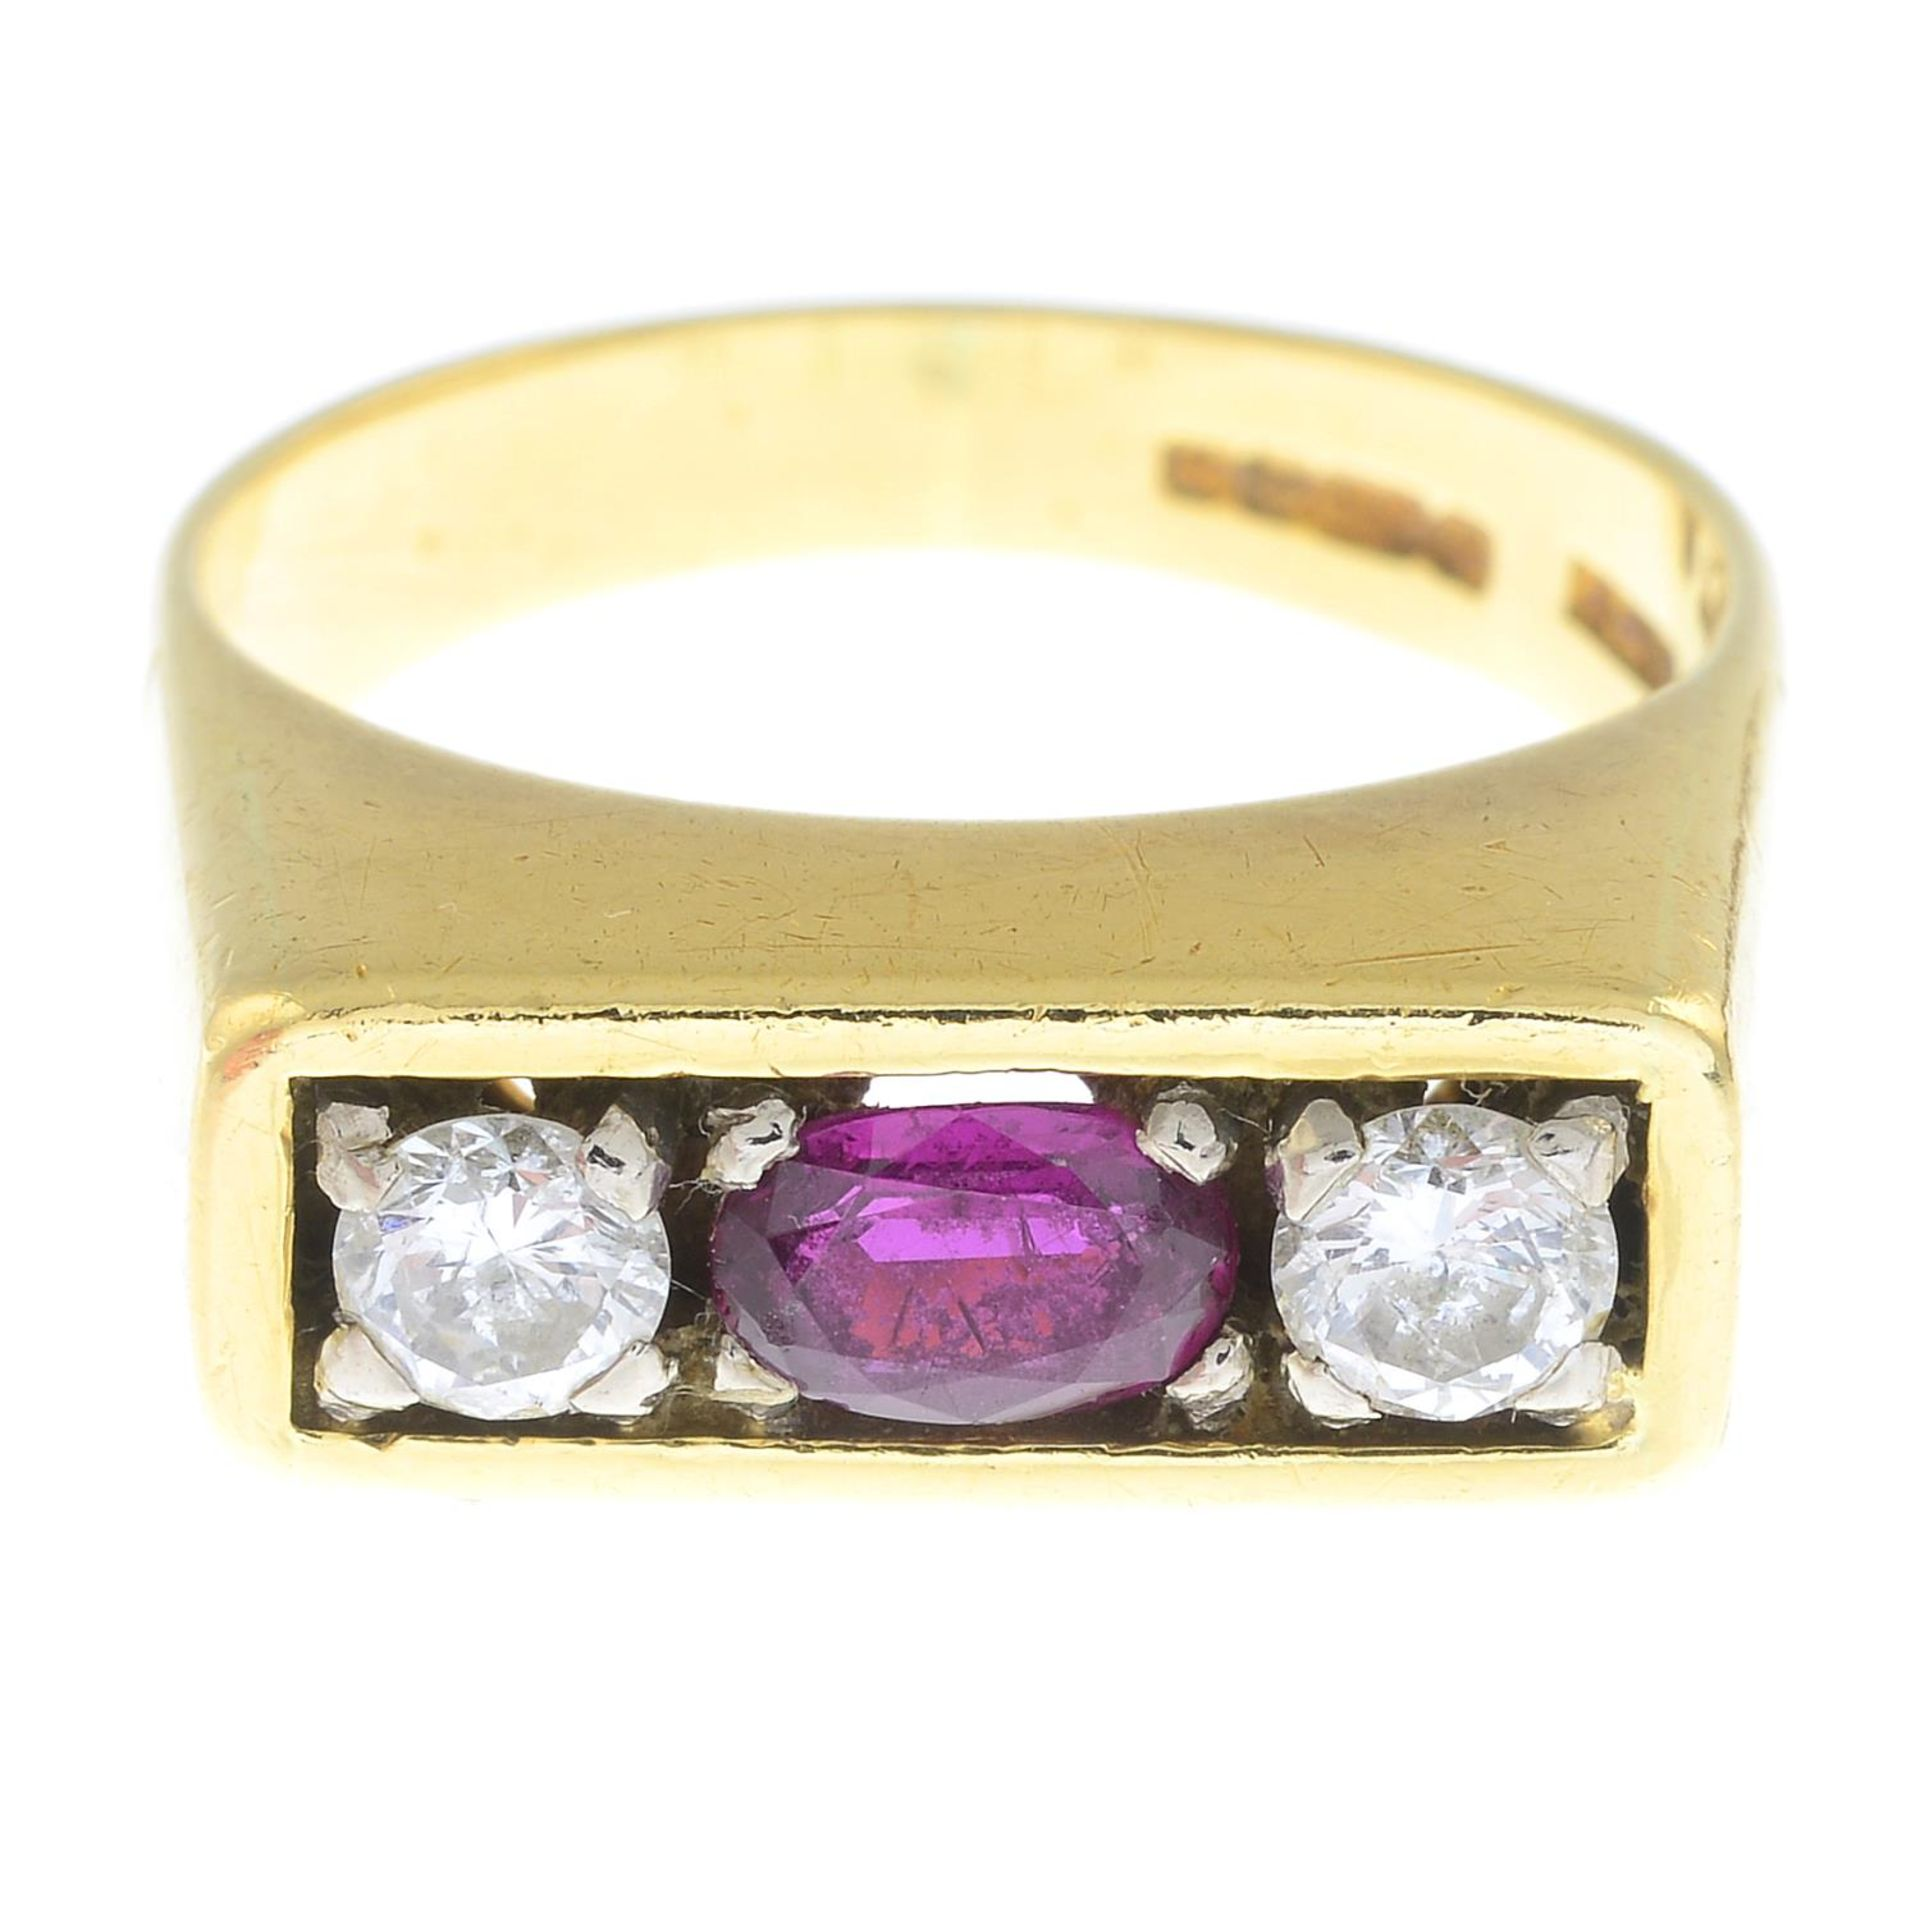 An 18ct gold ruby and brilliant-cut diamond three-stone ring.